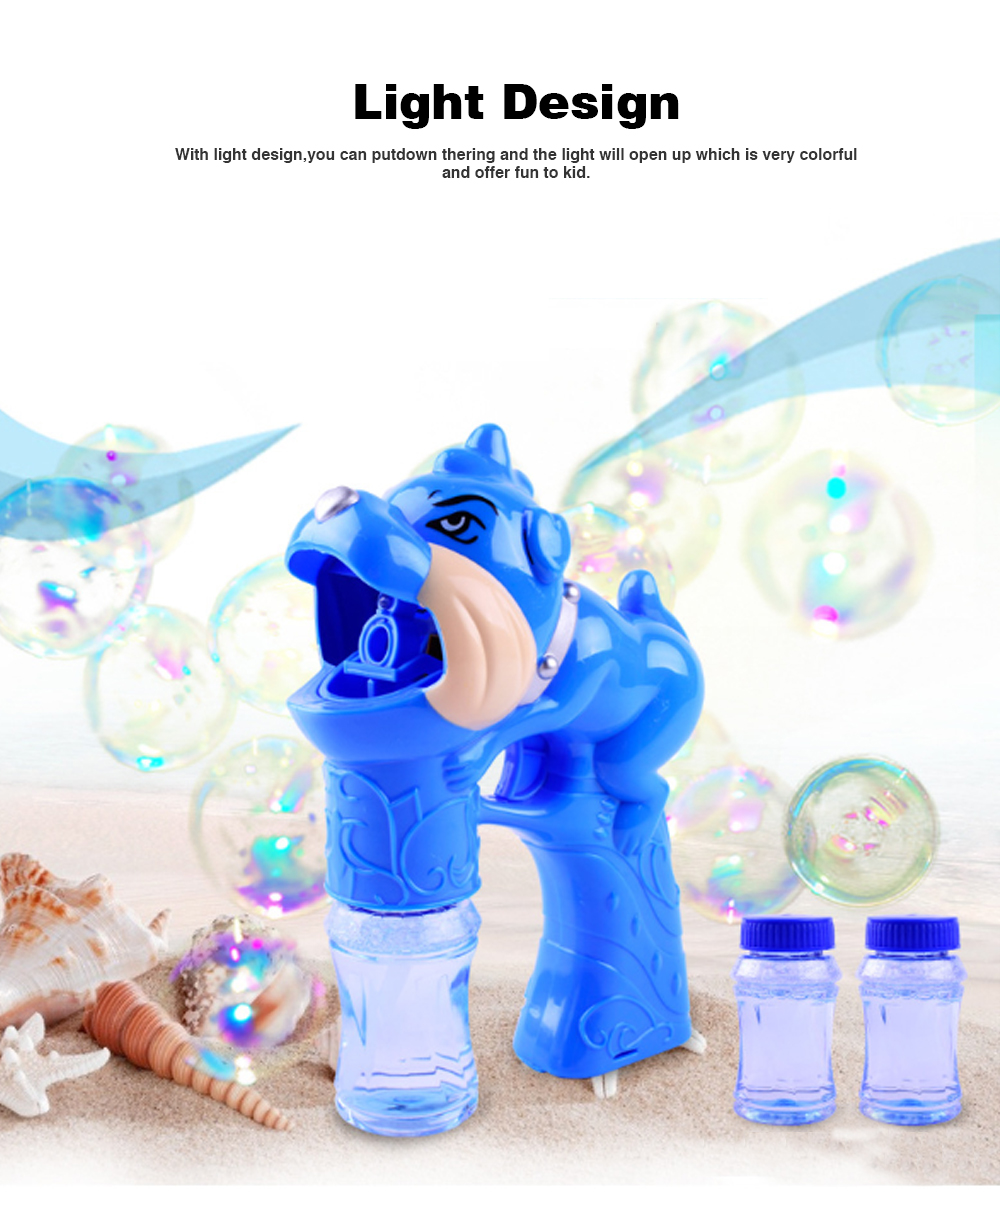 Children's Electric Bubble Gun, Glowing Music Blowing Bubble Toy, Automatic Bubble Machine With Bubble Water 2